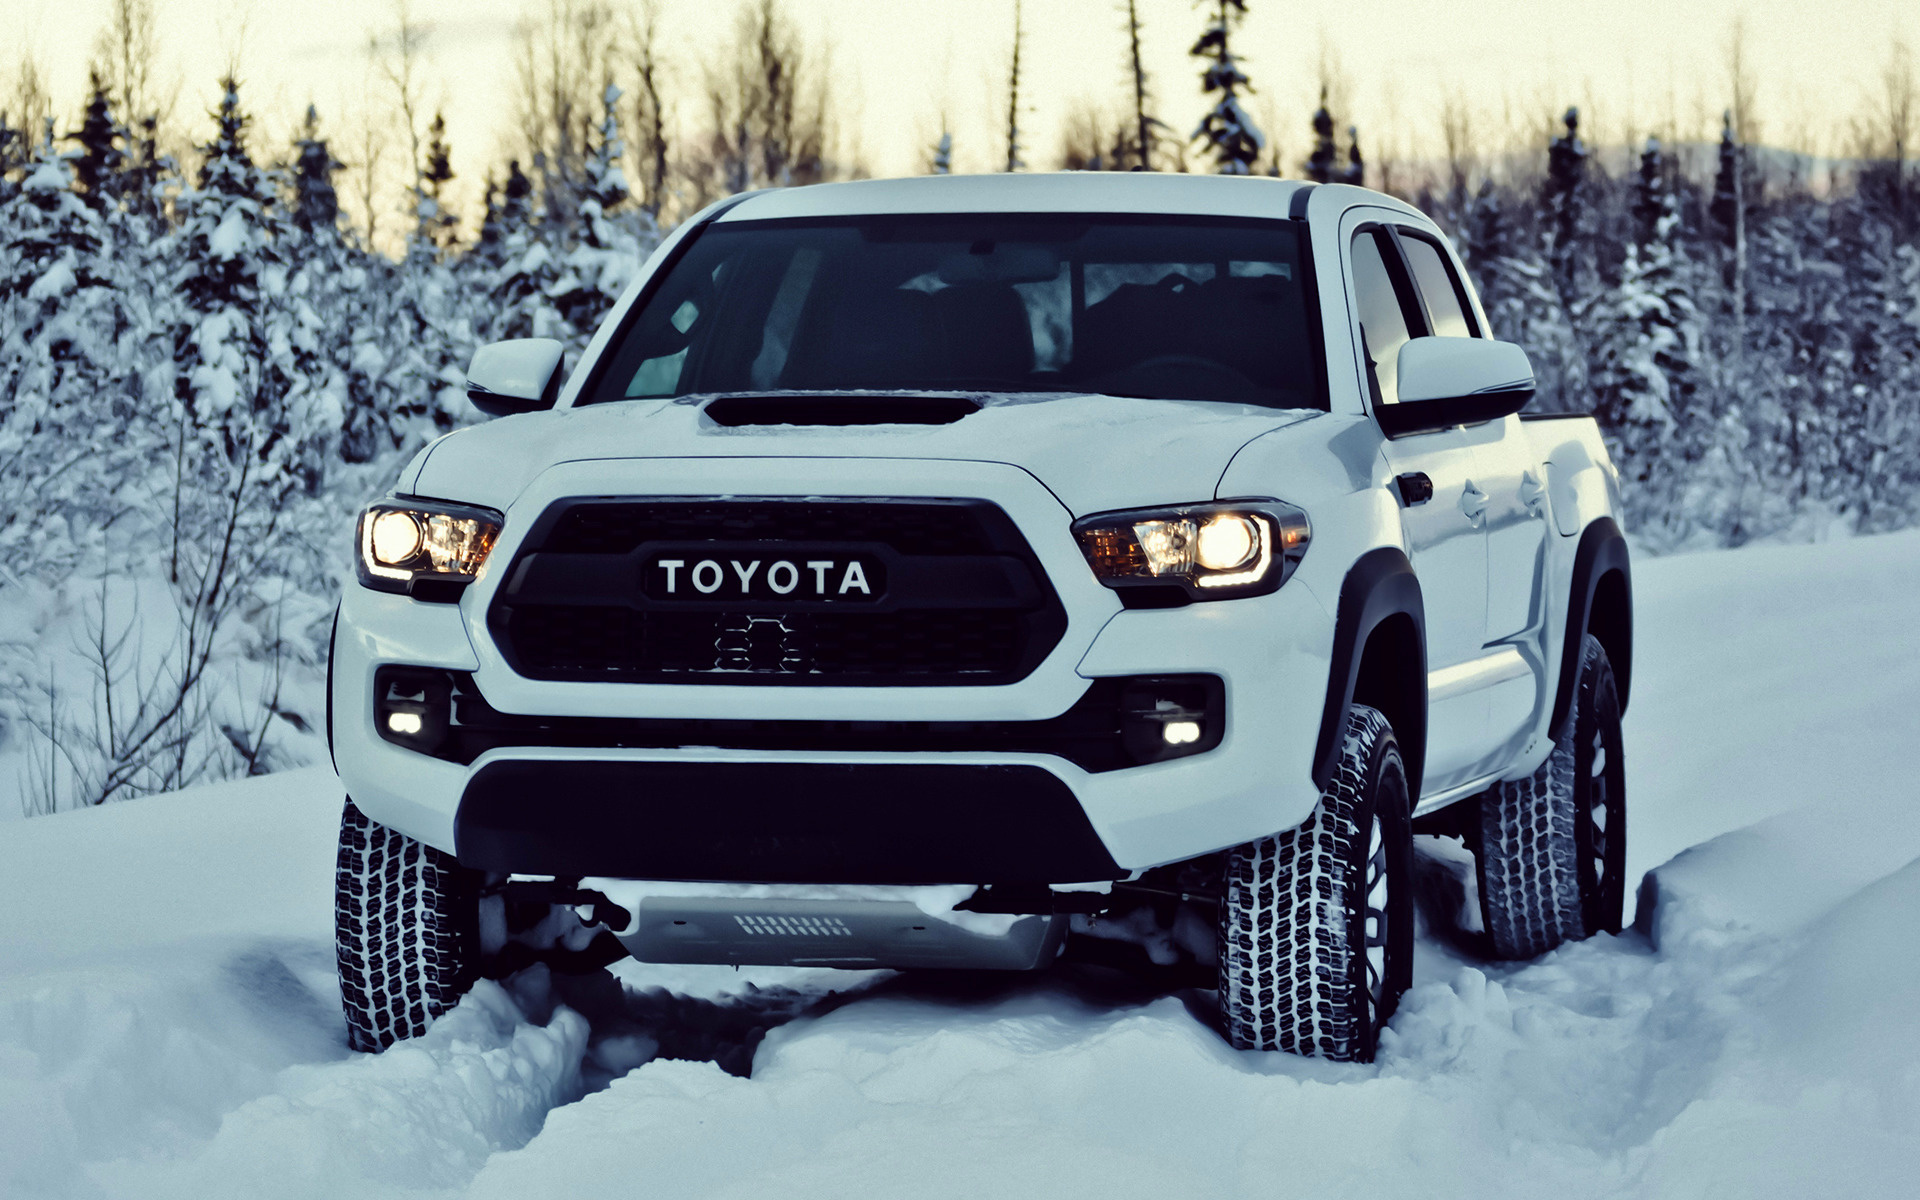 2017 Toyota Tacoma TRD Pro Double Cab   Wallpapers and HD Images 1920x1200